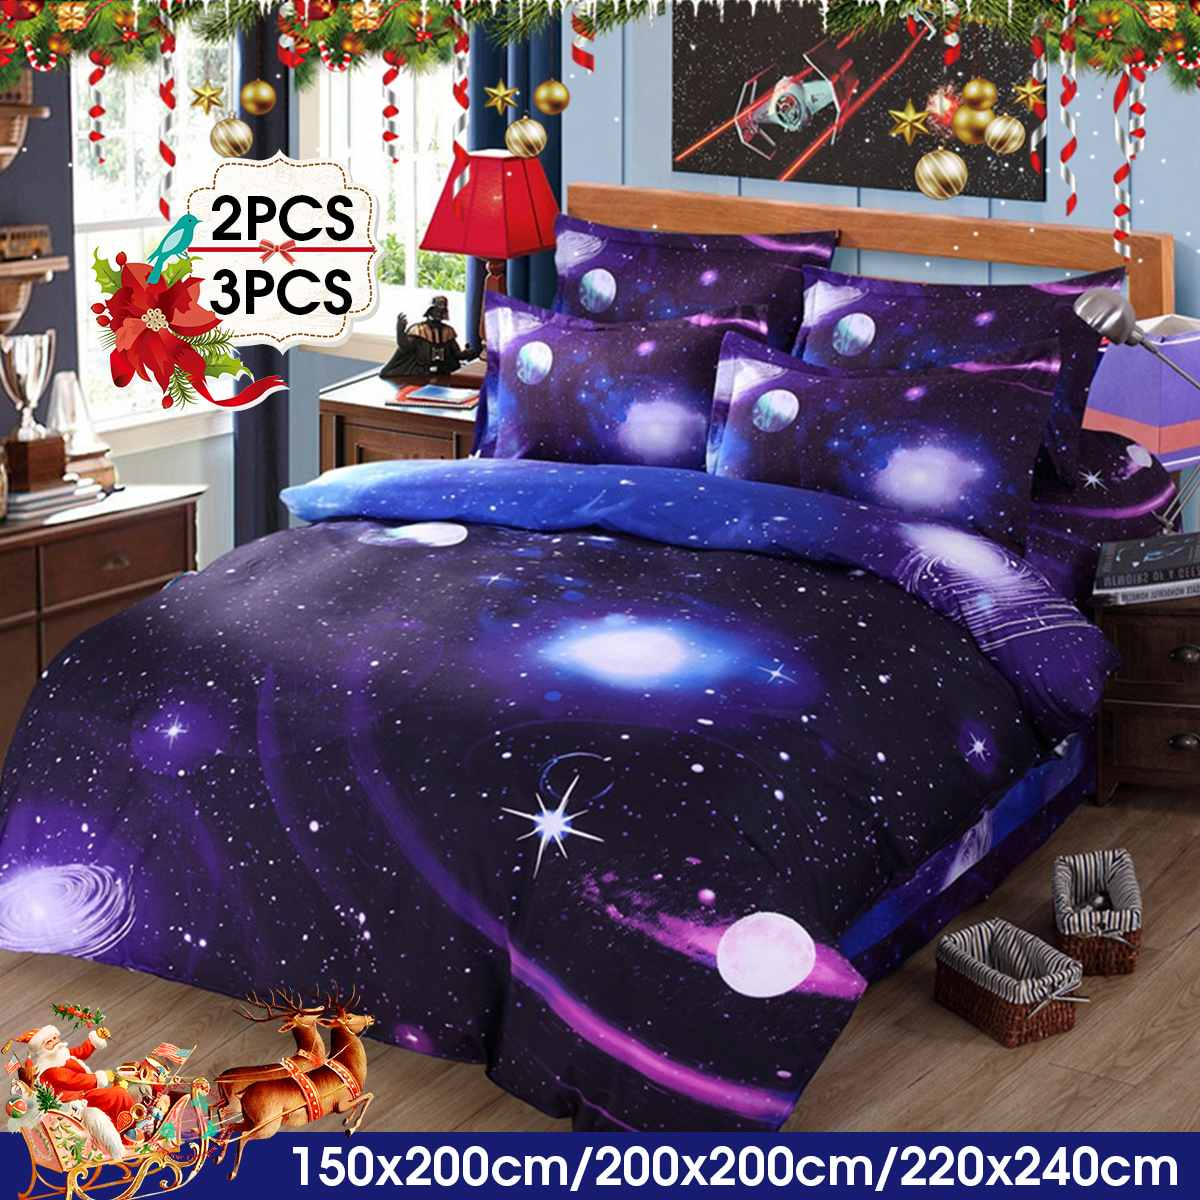 2/3 Pcs 3D Star Bedding Cover Set Polyester Twin/Queens Bedding Sets Universe Outer Space Themed Bed Linen Winter Home Textile